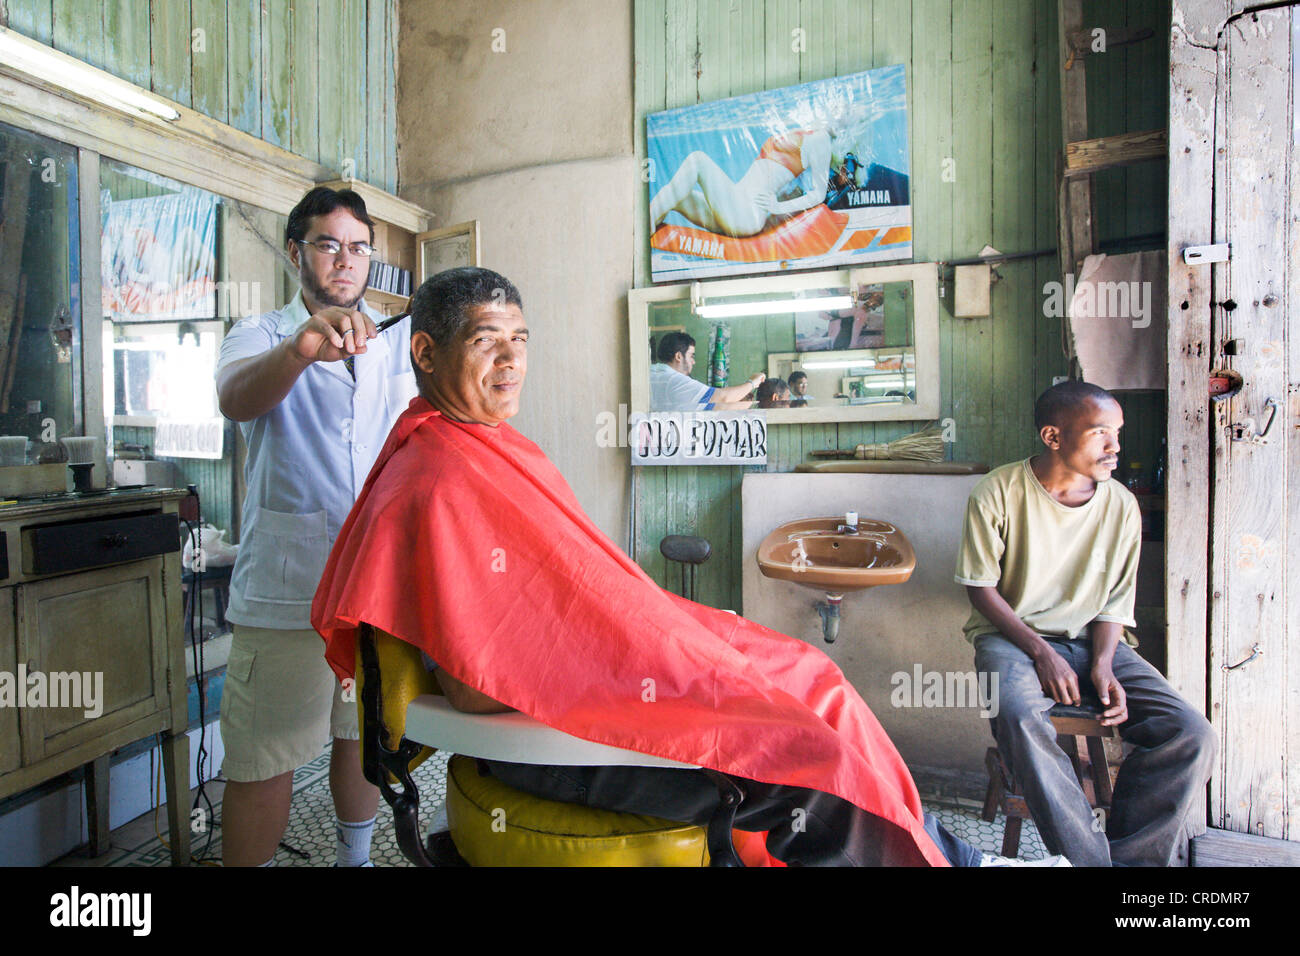 Private hairdressing salon in the old town, Santiago de Cuba, Cuba - Stock Image